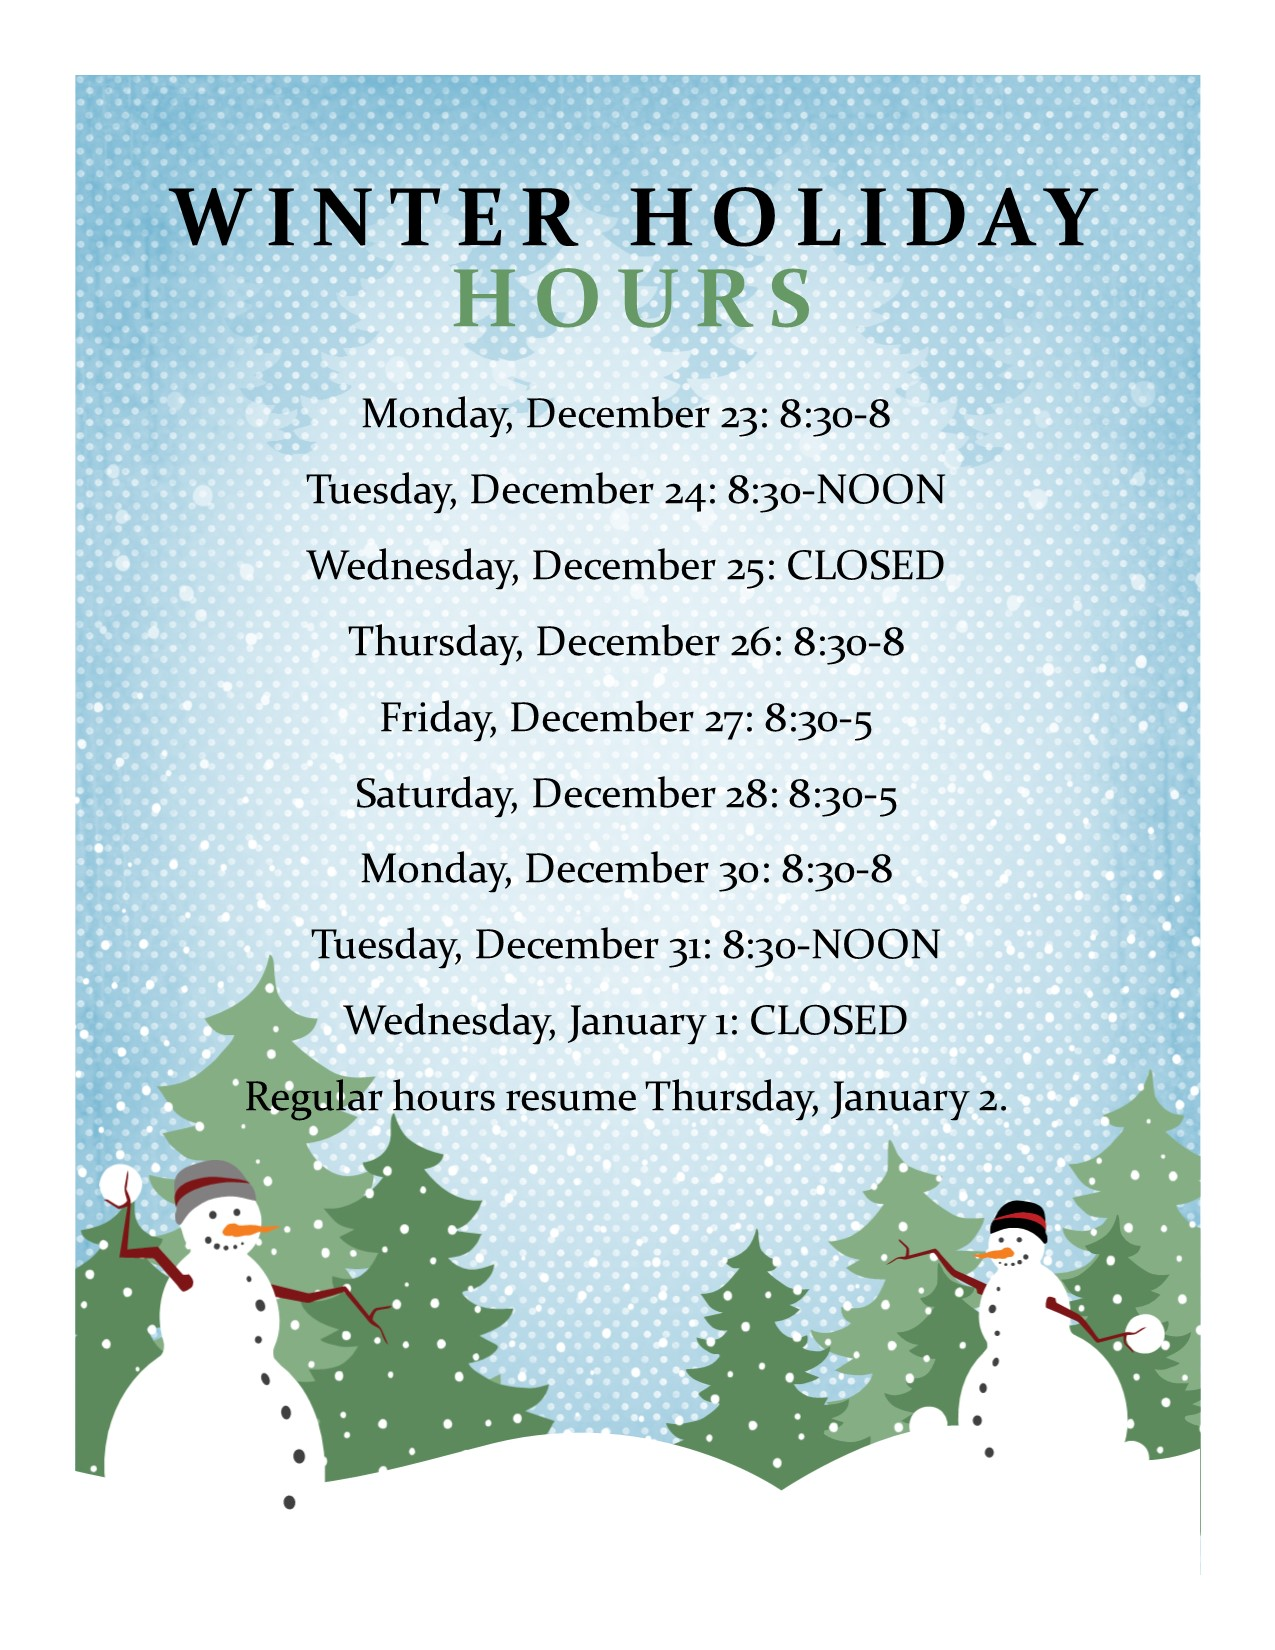 Both the Main Library and the F.N. Manross Memorial Library will observe the following holiday hours:  Tuesday, December 24: close at noon; Wednesday, December 25: closed all day; Thursday, December 26 through Monday, December 30: open normal hours;  Tuesday, December 31: close at noon; Wednesday, January 1: closed all day; Thursday, January 2: back to normal hours